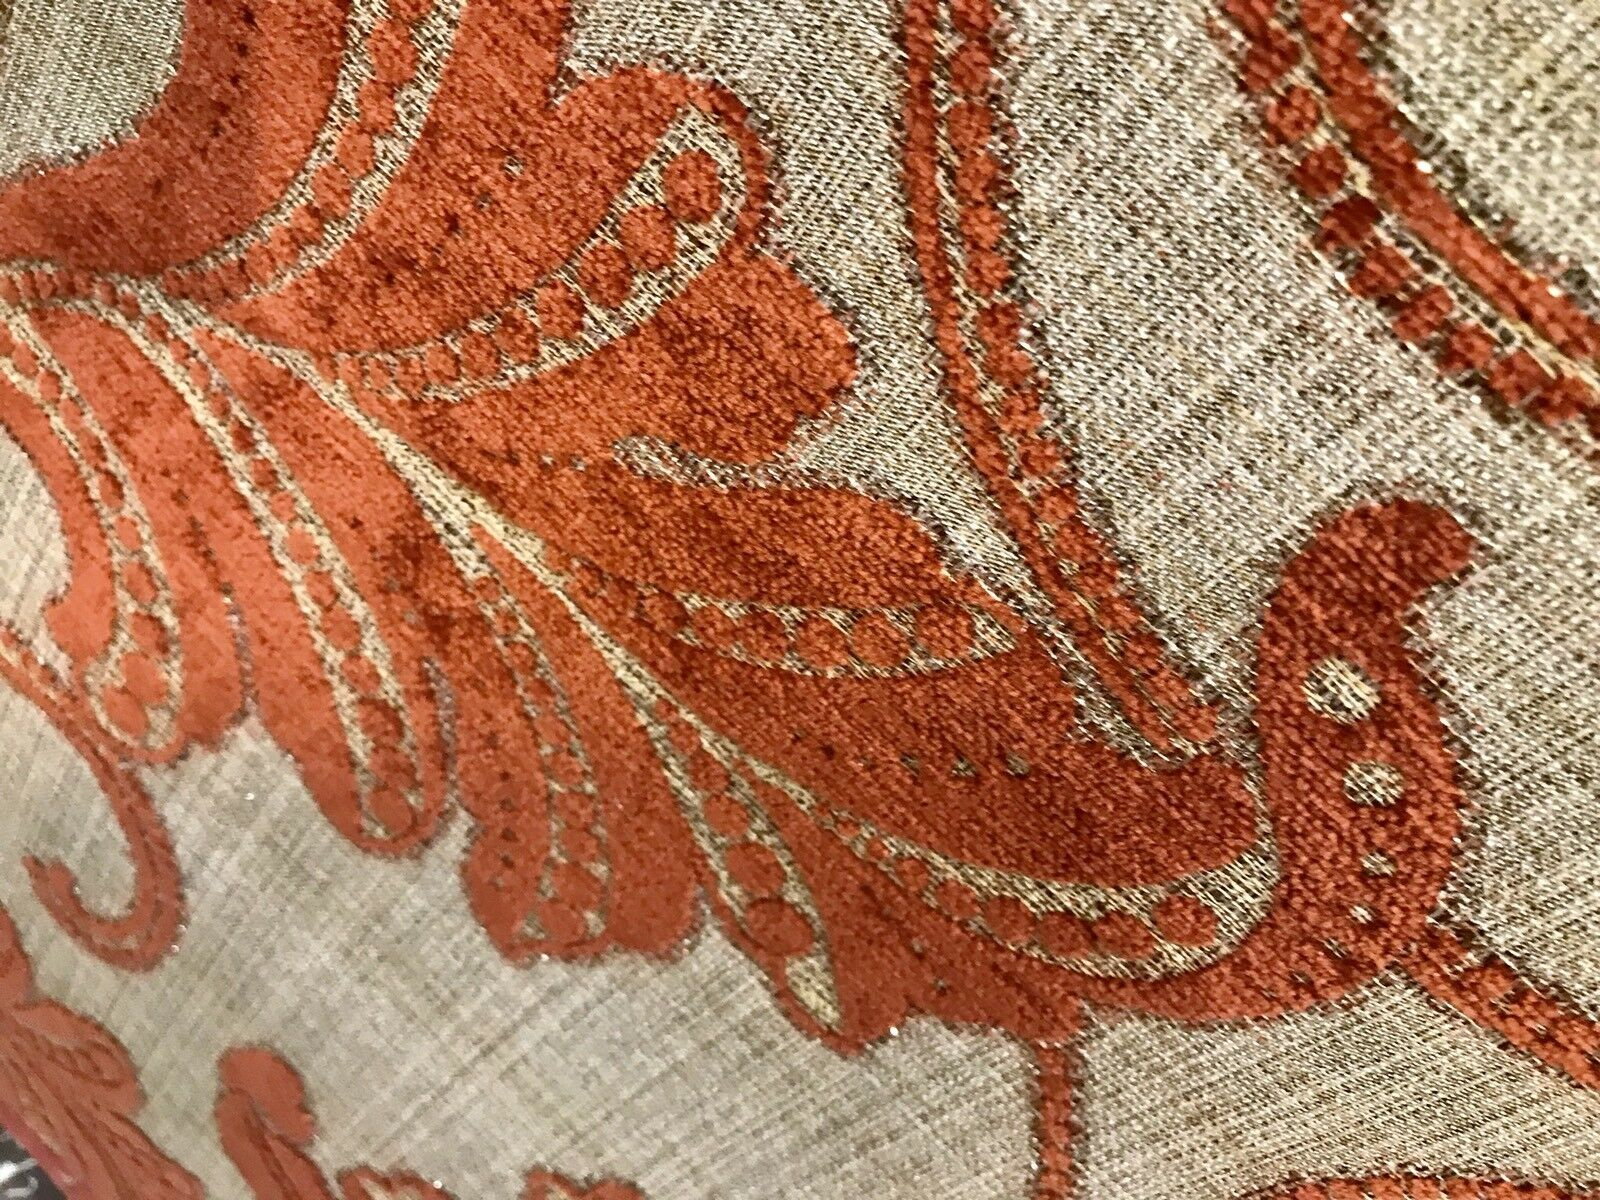 NEW! Designer Burnout Velvet Floral Upholstery Fabric- Burnt Orange Rust Red